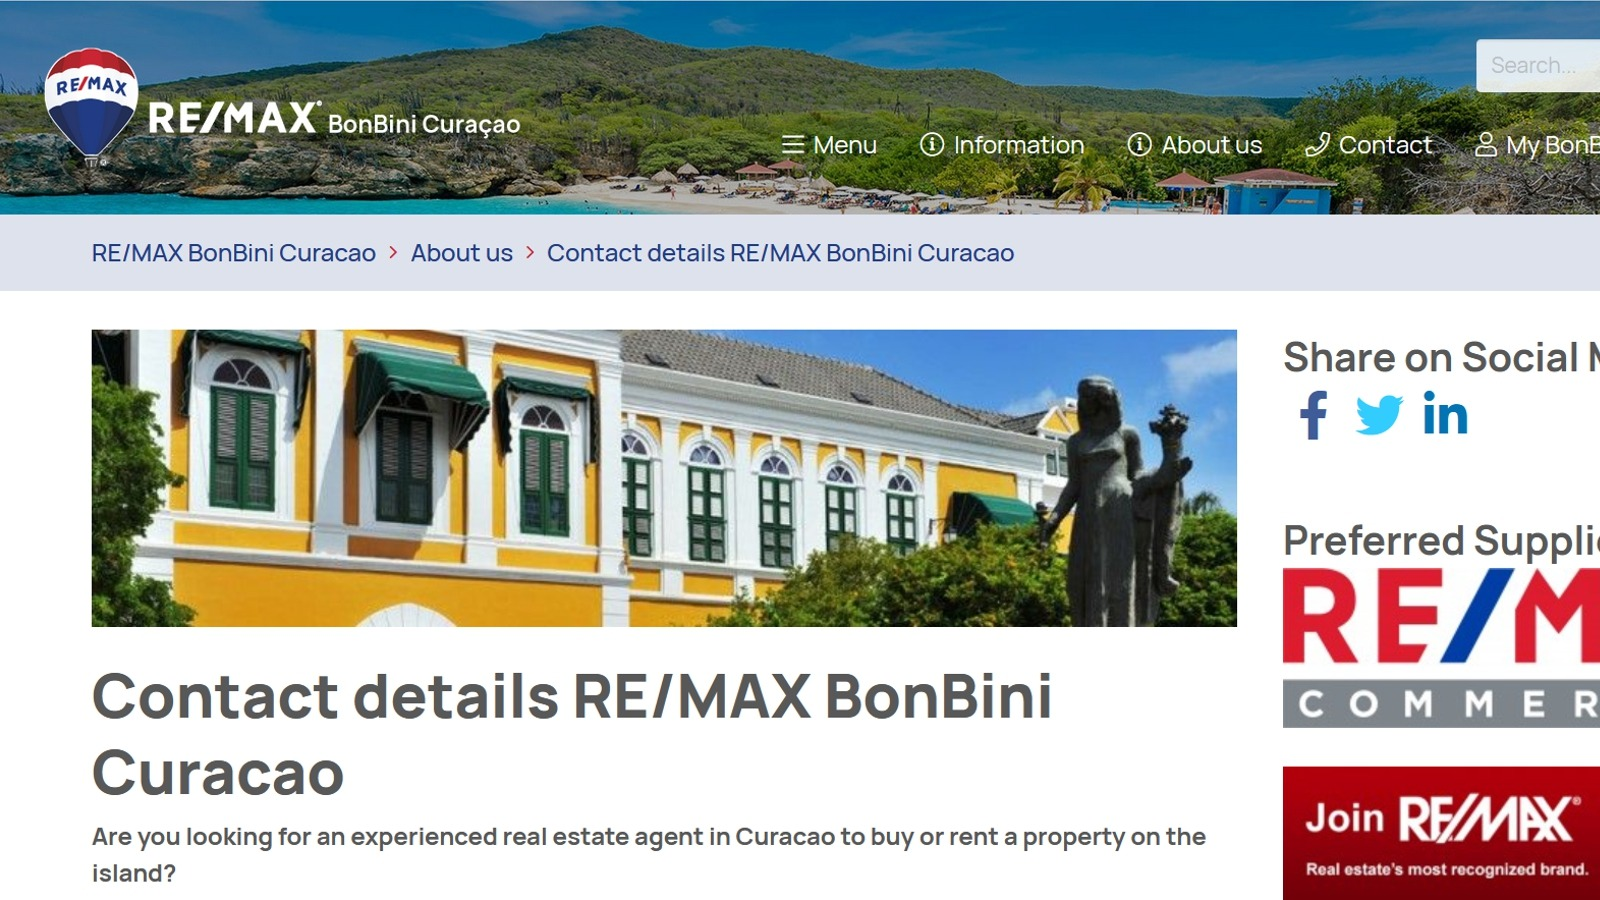 Remax Bonbini Real Estate Curacao Viewr The Global Position On Real Estate